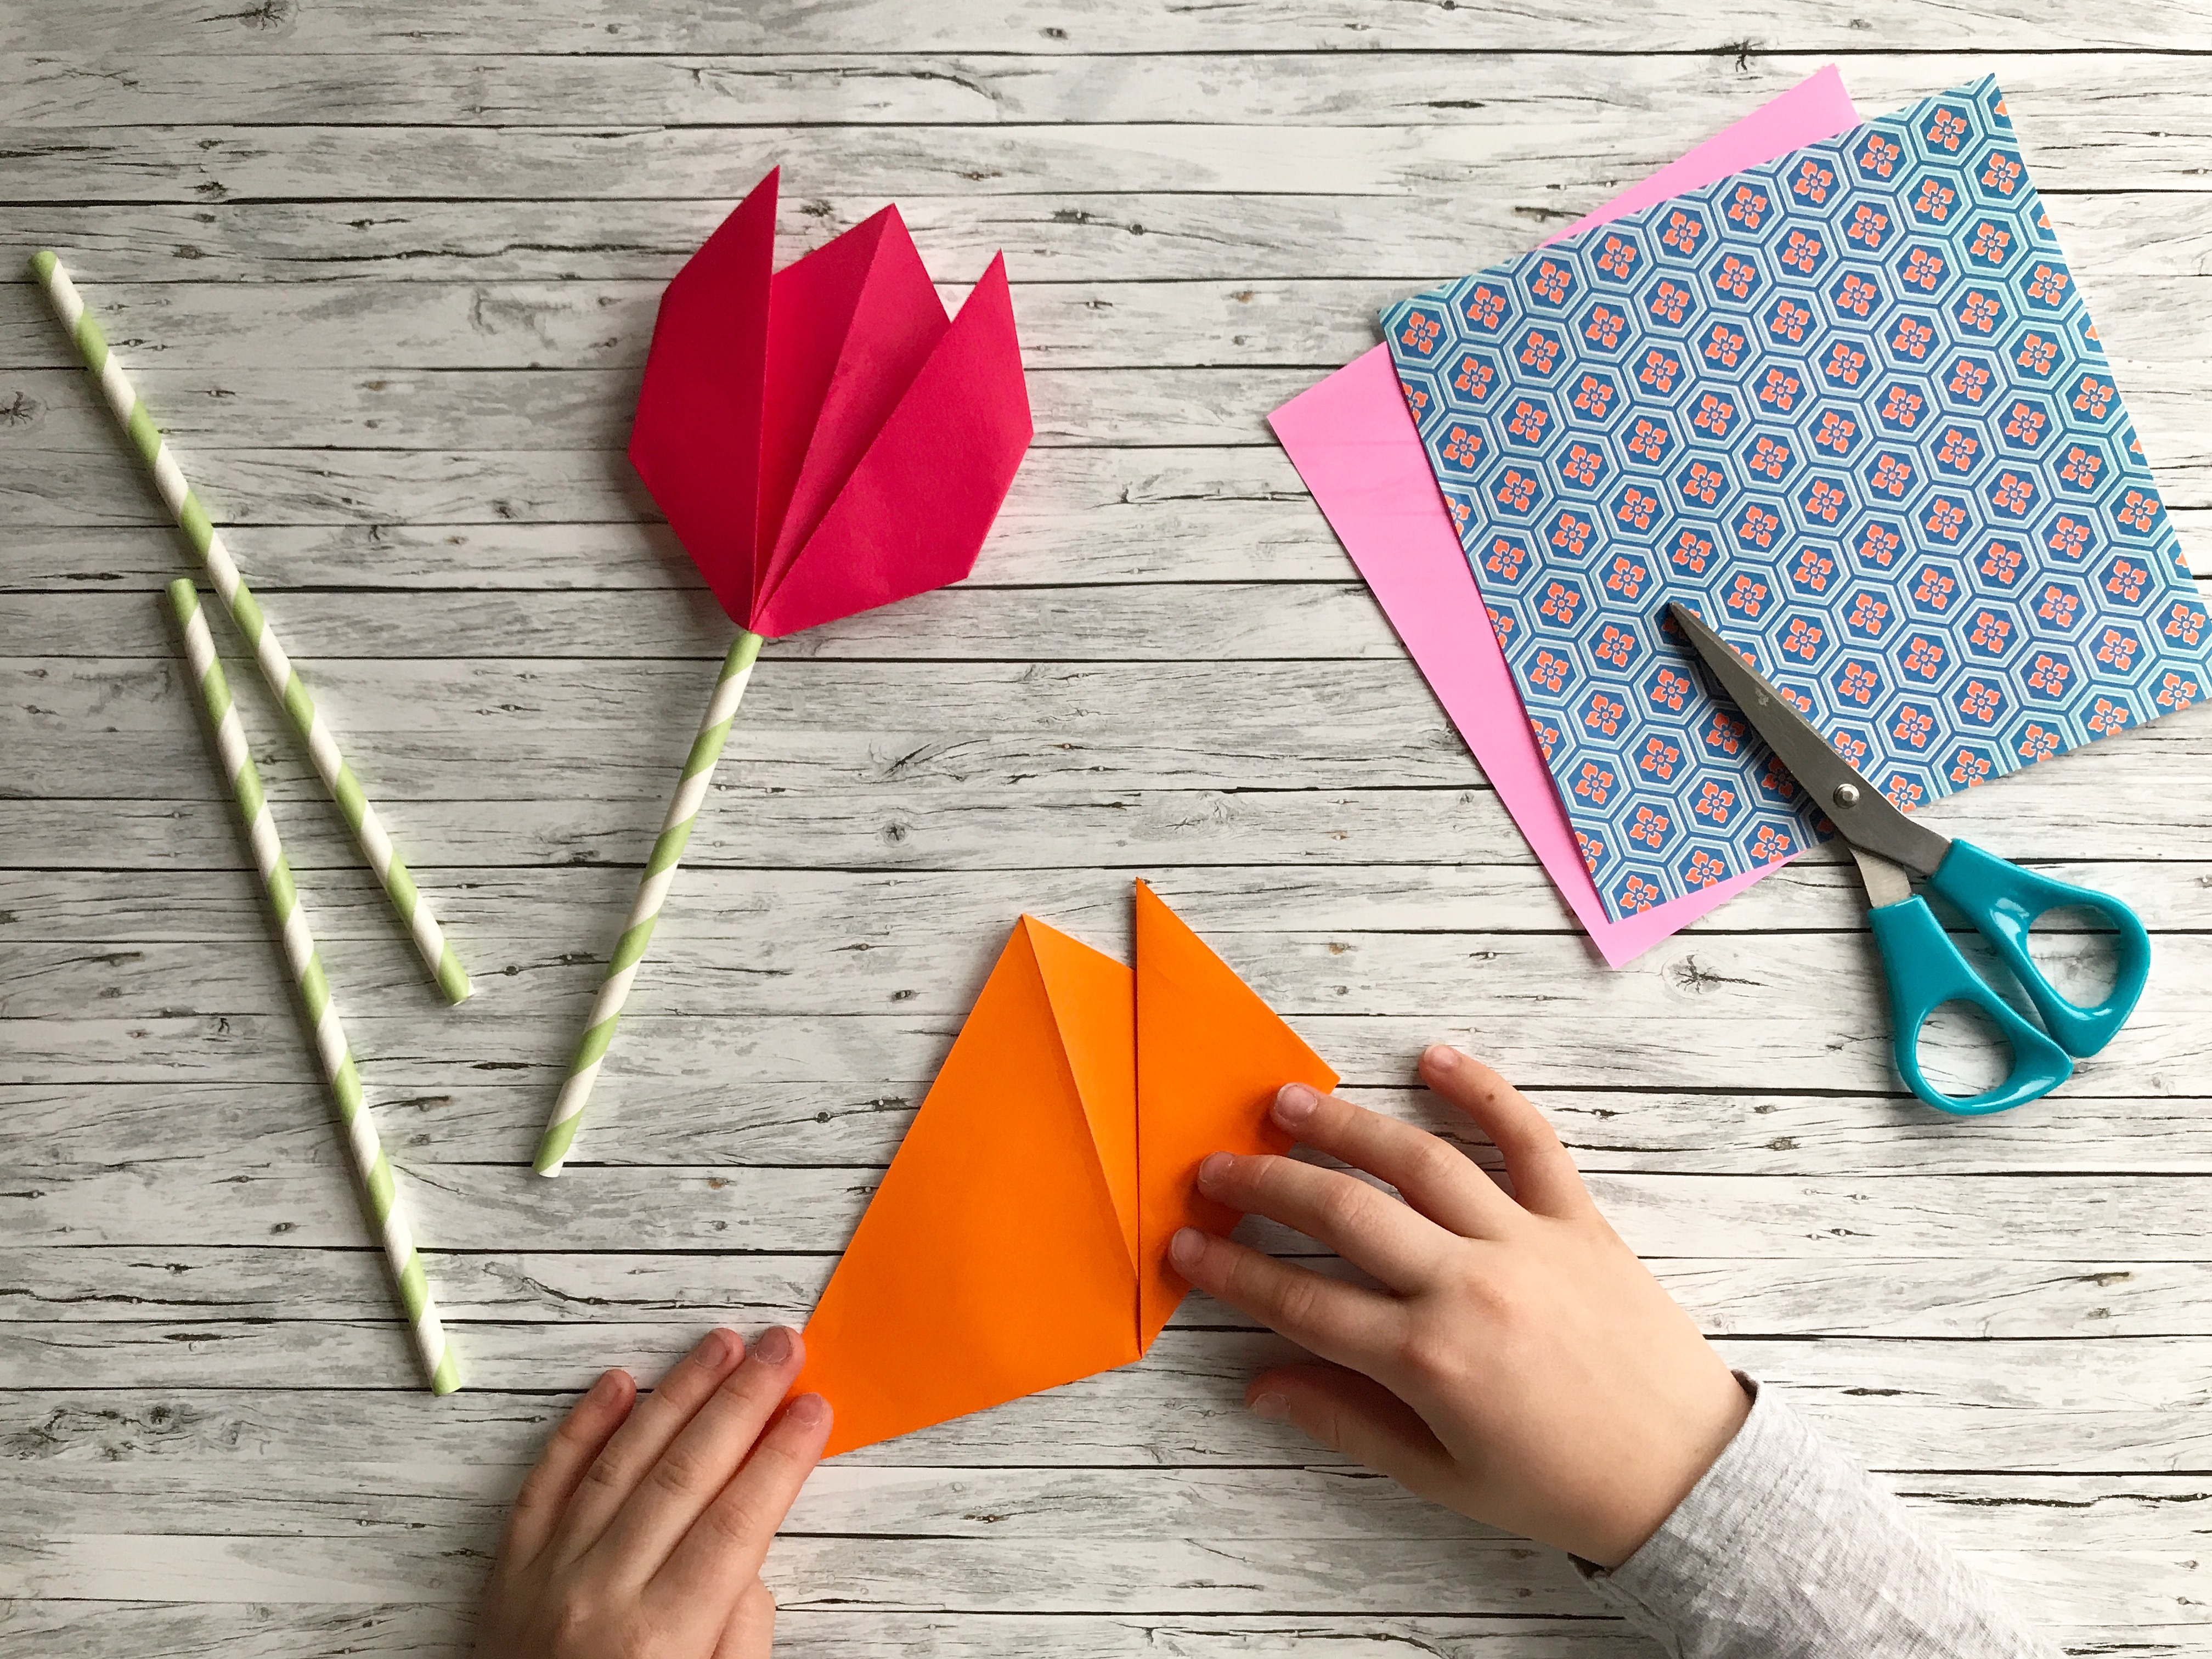 How To Make An Origami Tulip Easy Peasy Origami Tulips The Bear The Fox